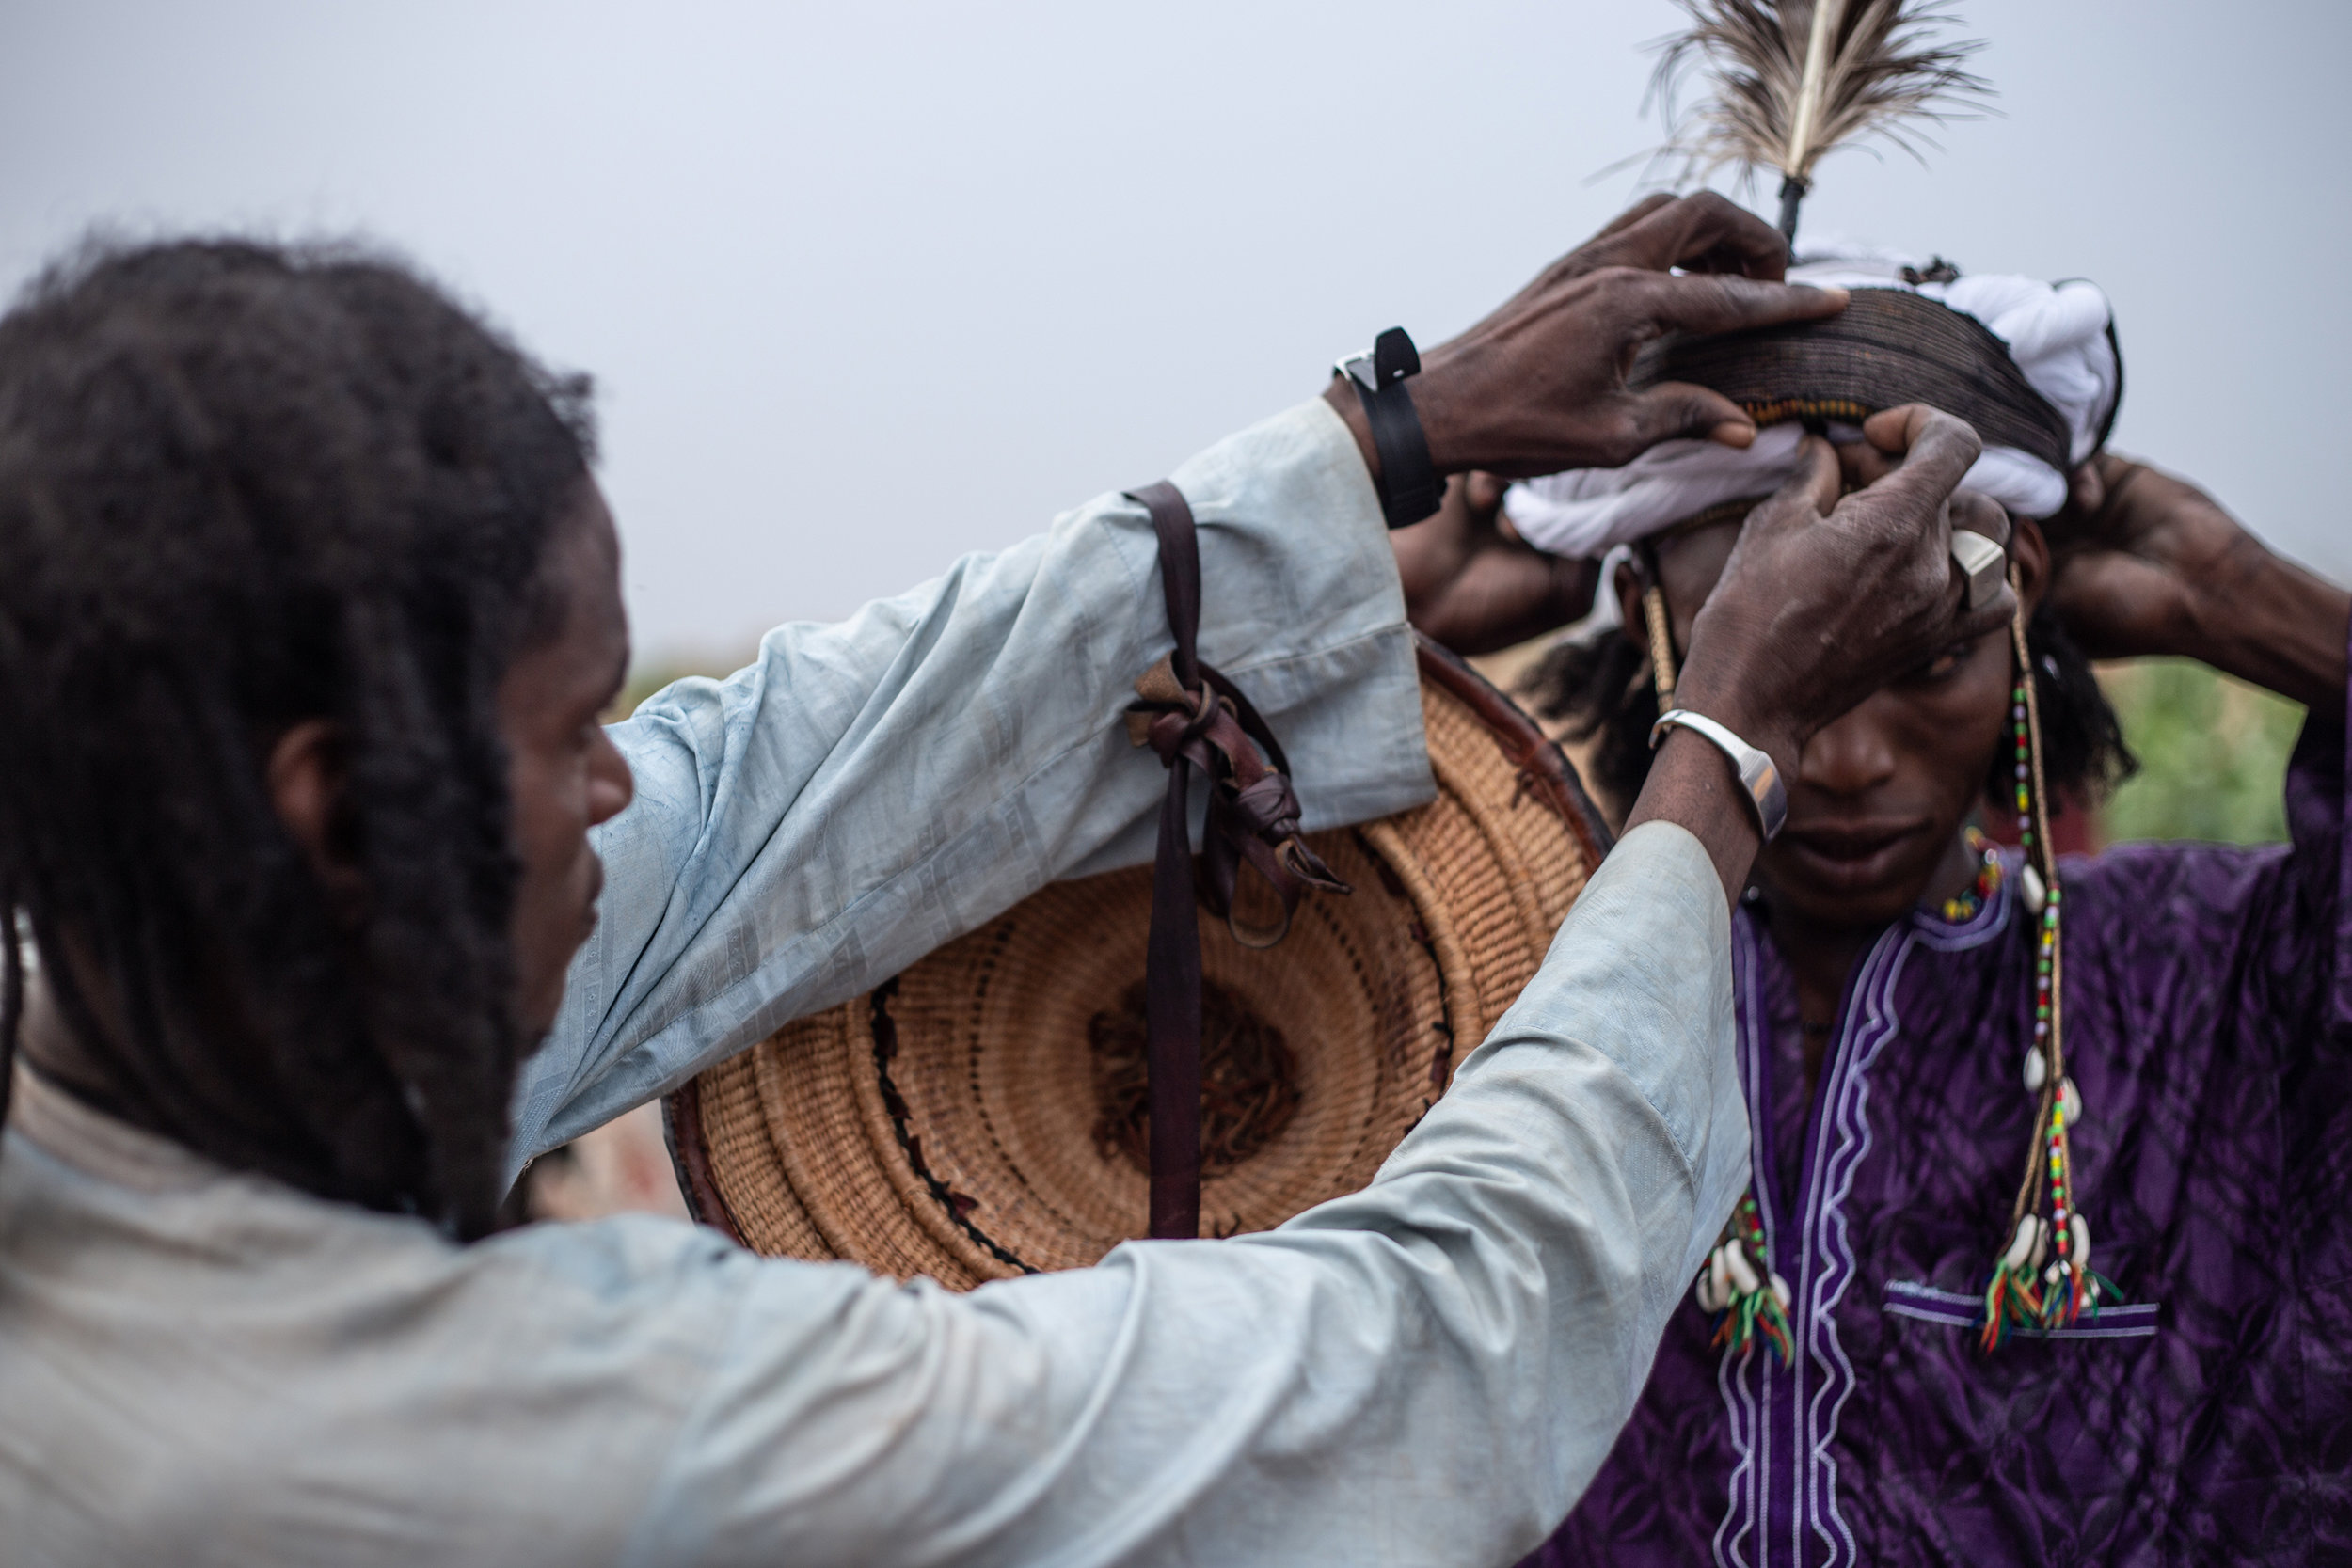 Wodaabe men prepare themselves with meticulous makeup and feathers in hopes of finding female companionship.